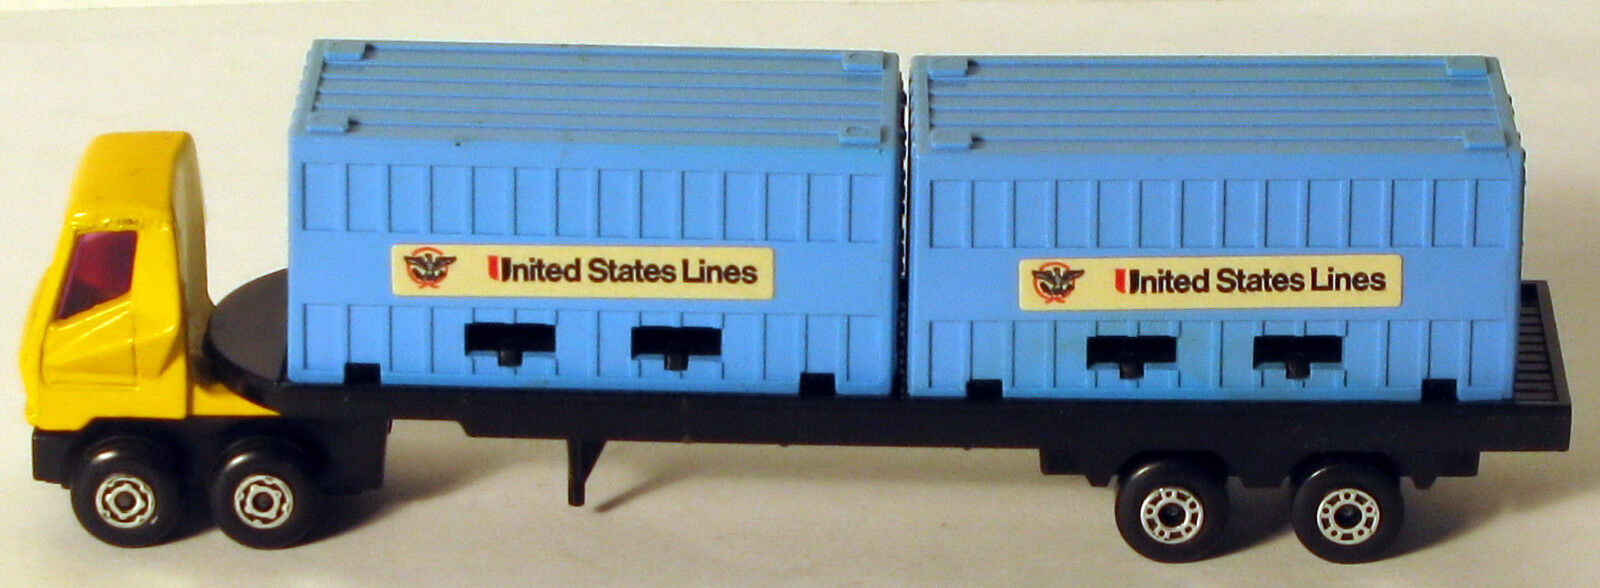 DTE LESNEY MATCHBOX CONVOY PS-1 YELLOW YELLOW YELLOW CAB blueE U.S. LINES DOUBLE CONTAINER TRK 4afb36